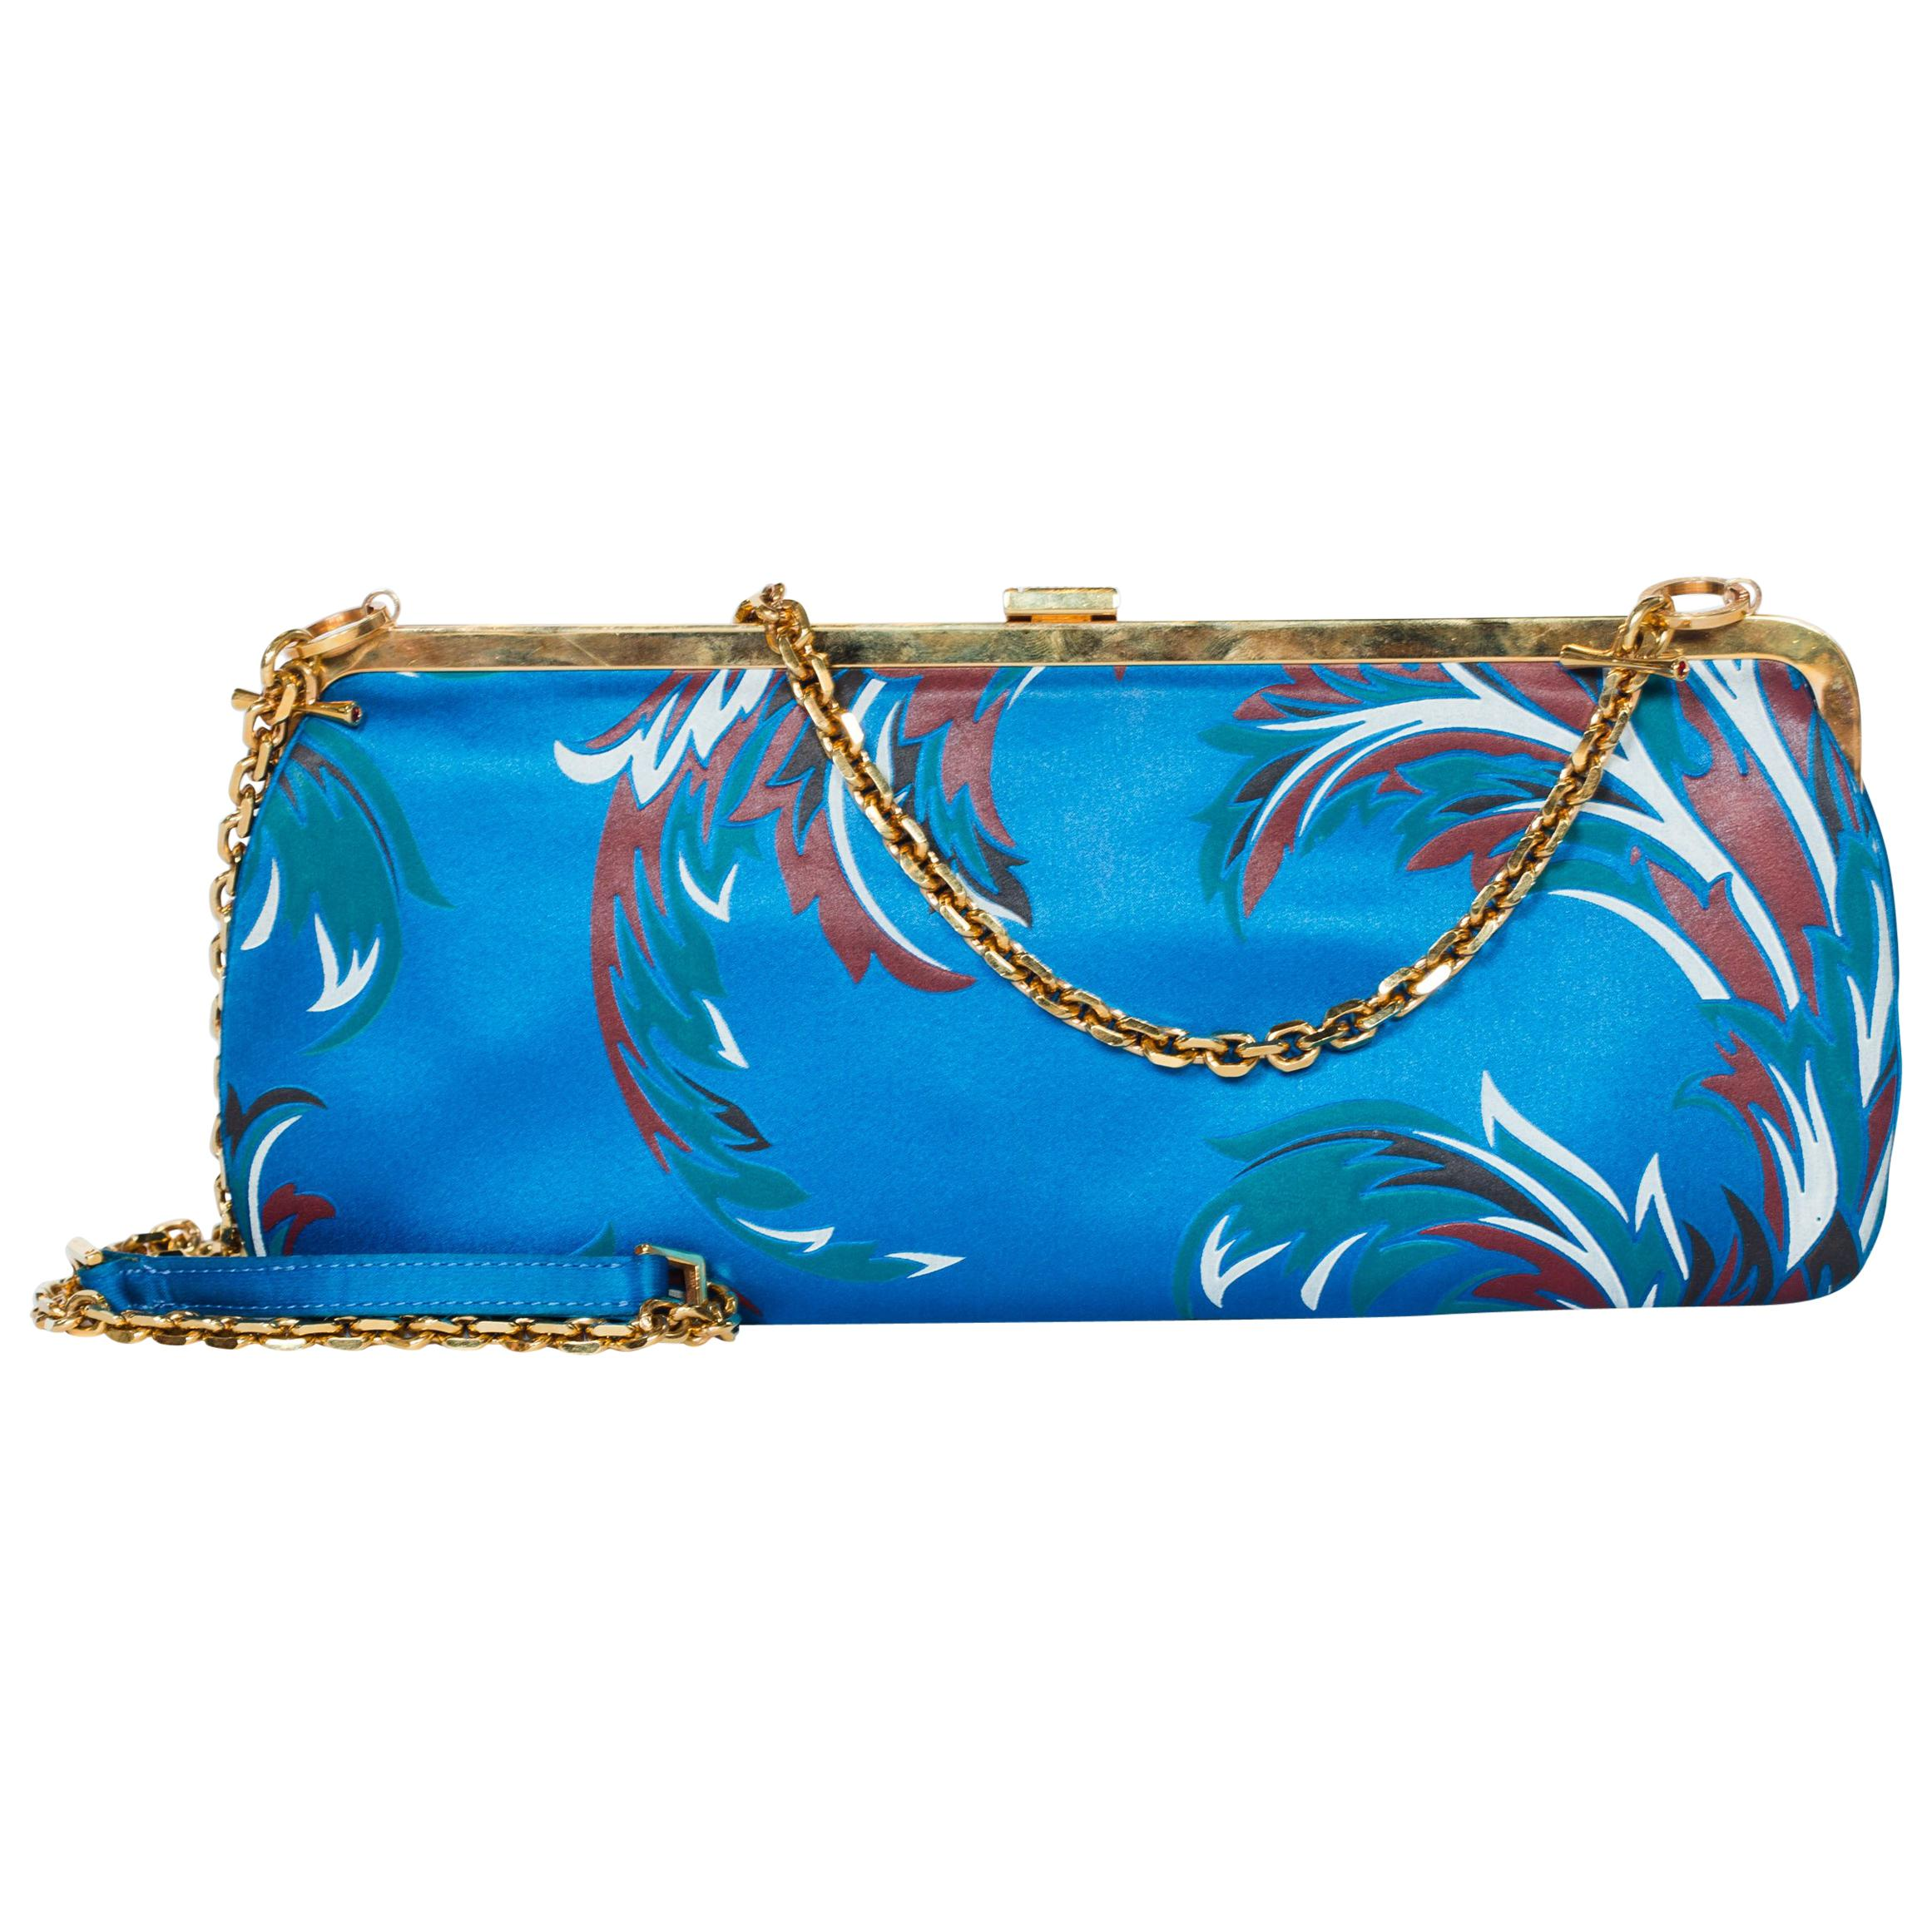 1990S GIANNI VERSACE Baroque Satin Clutch With Gold Chain Strap & Crystals Hand